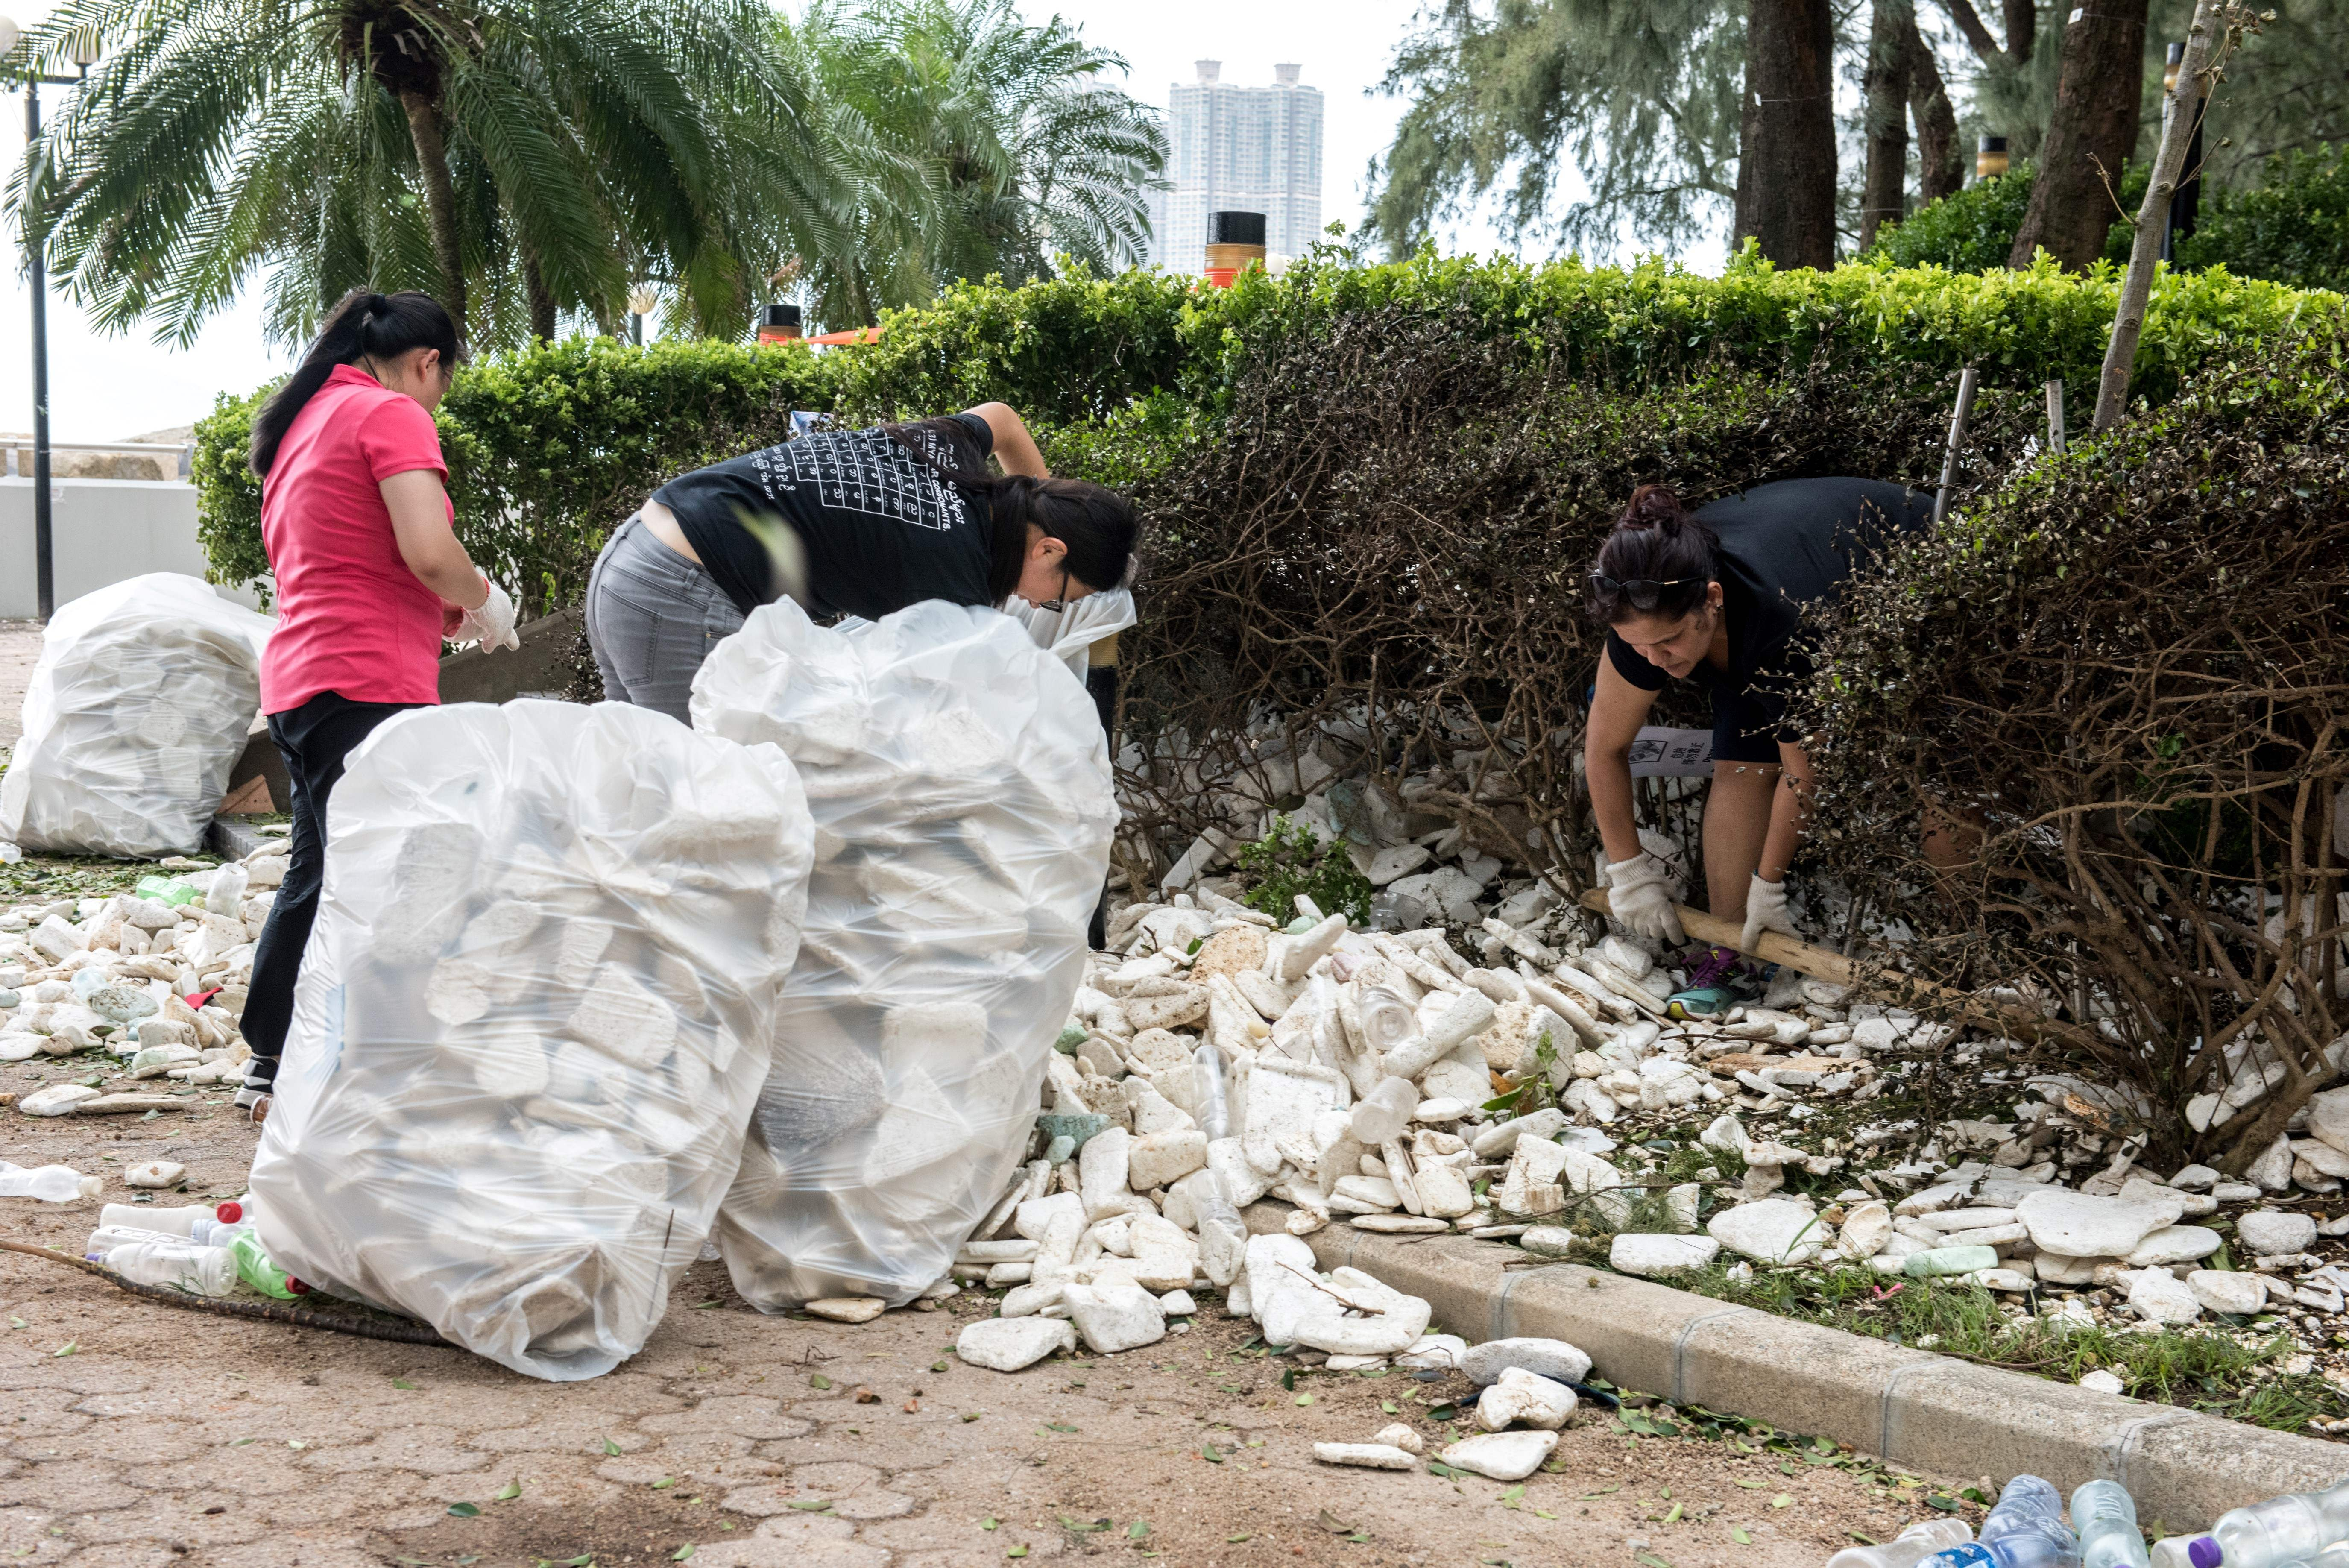 Residents and government workers pick up polystyrene and other rubbish in Heng Fa Chuen, Hong Kong, Aug. 24, 2017.